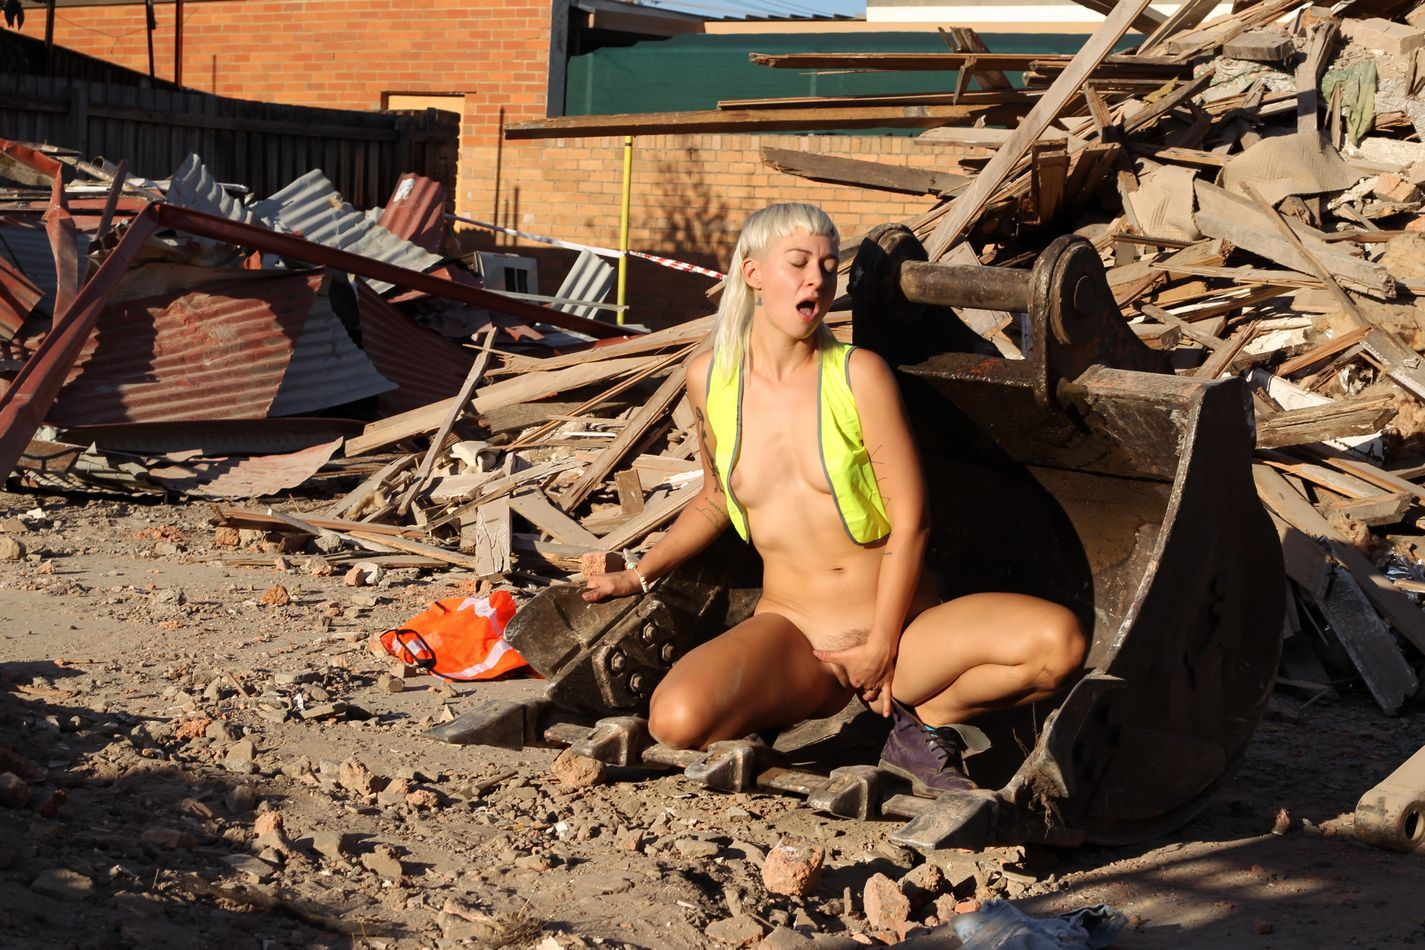 horny blonde amateur steel thinks this construction site is the perfect place for her to strip nude-12